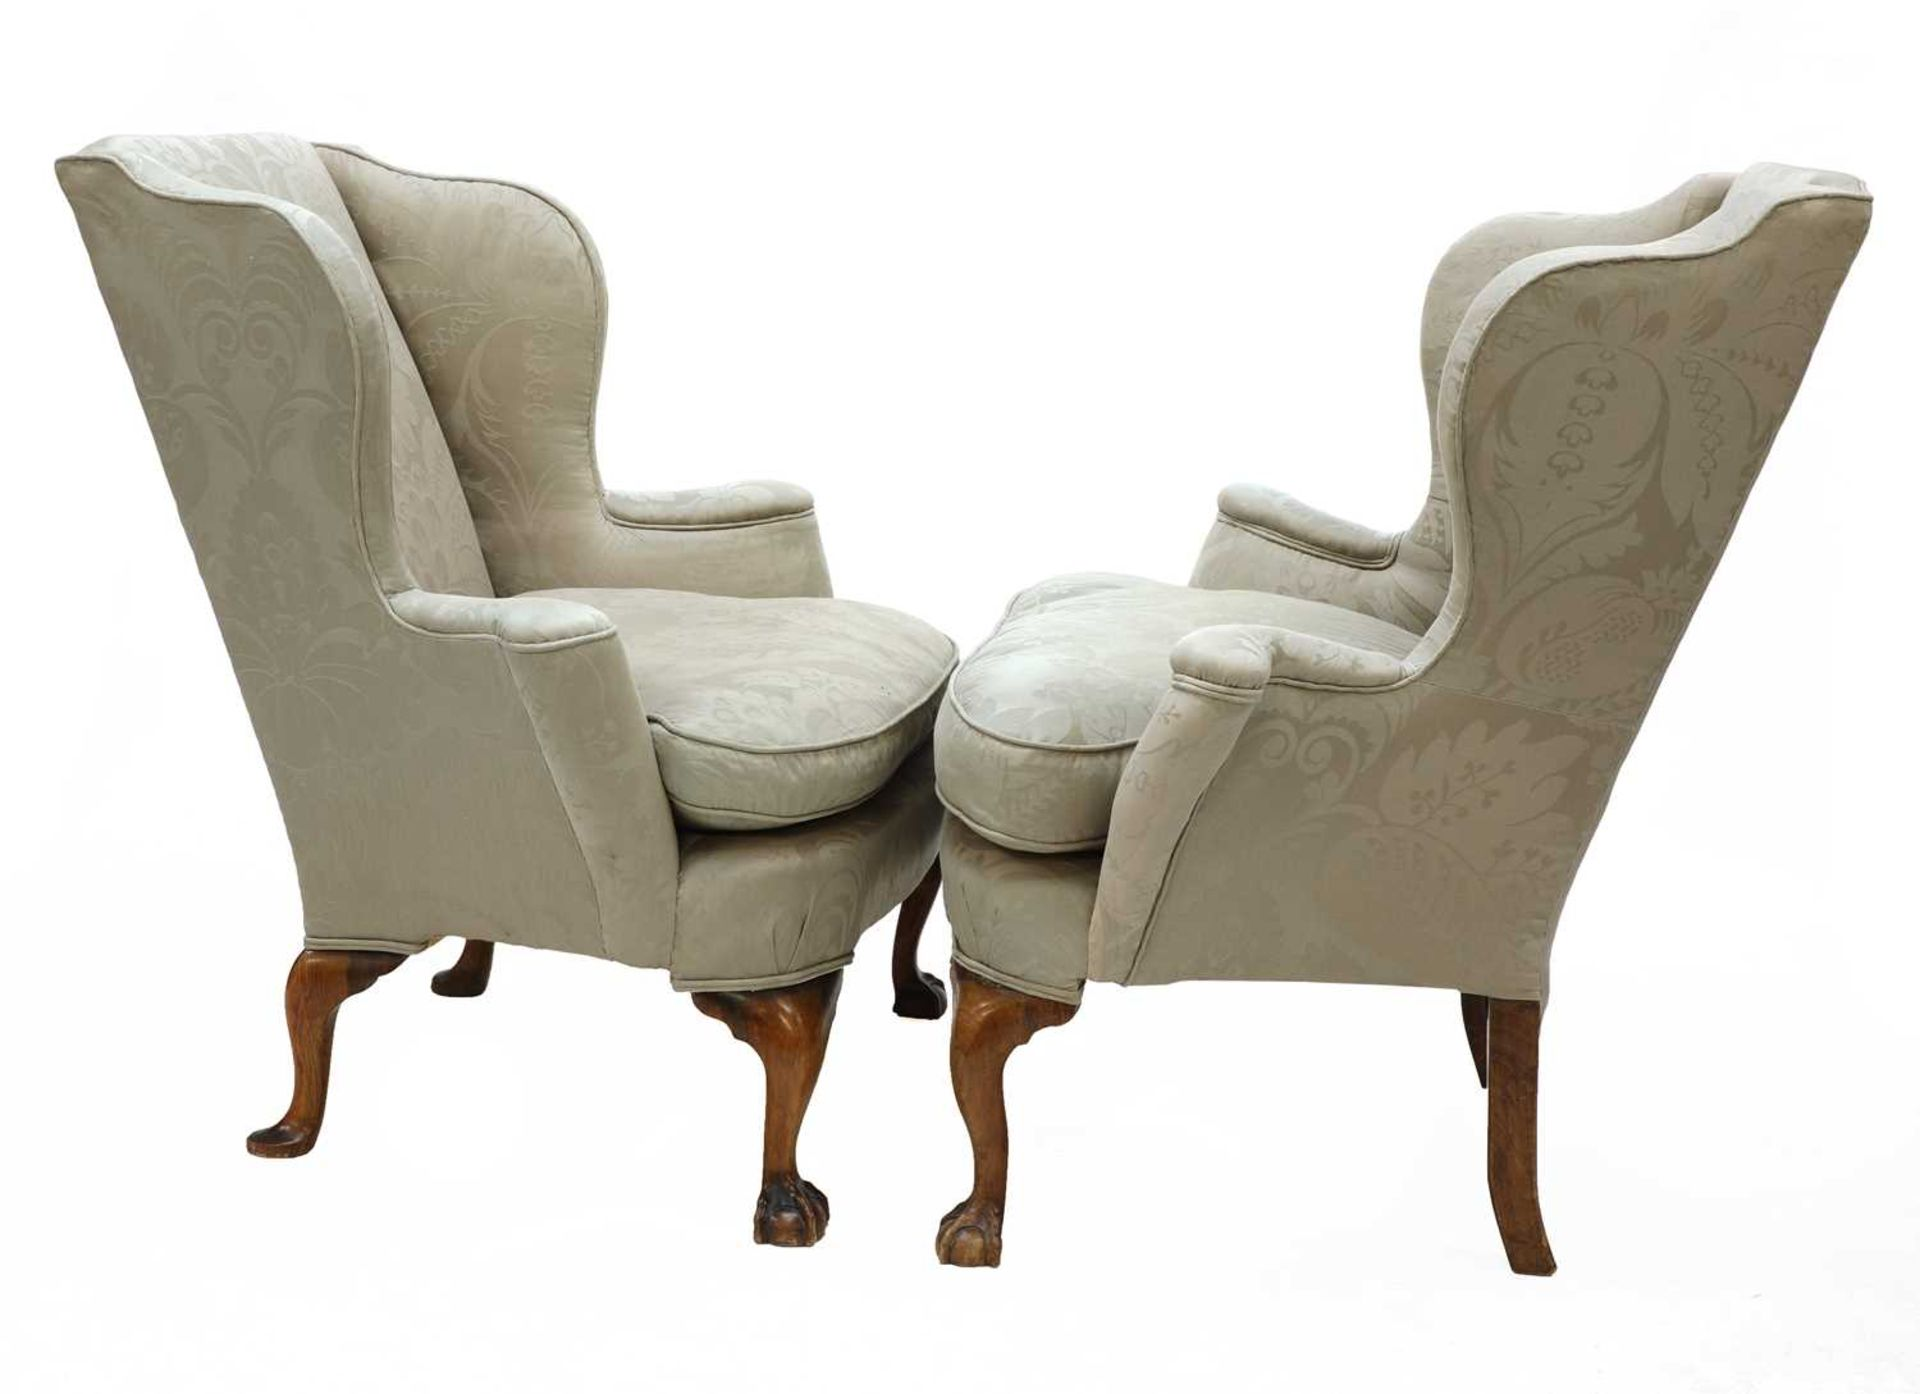 A closely matched pair of George III-style wing back armchairs, - Image 2 of 3